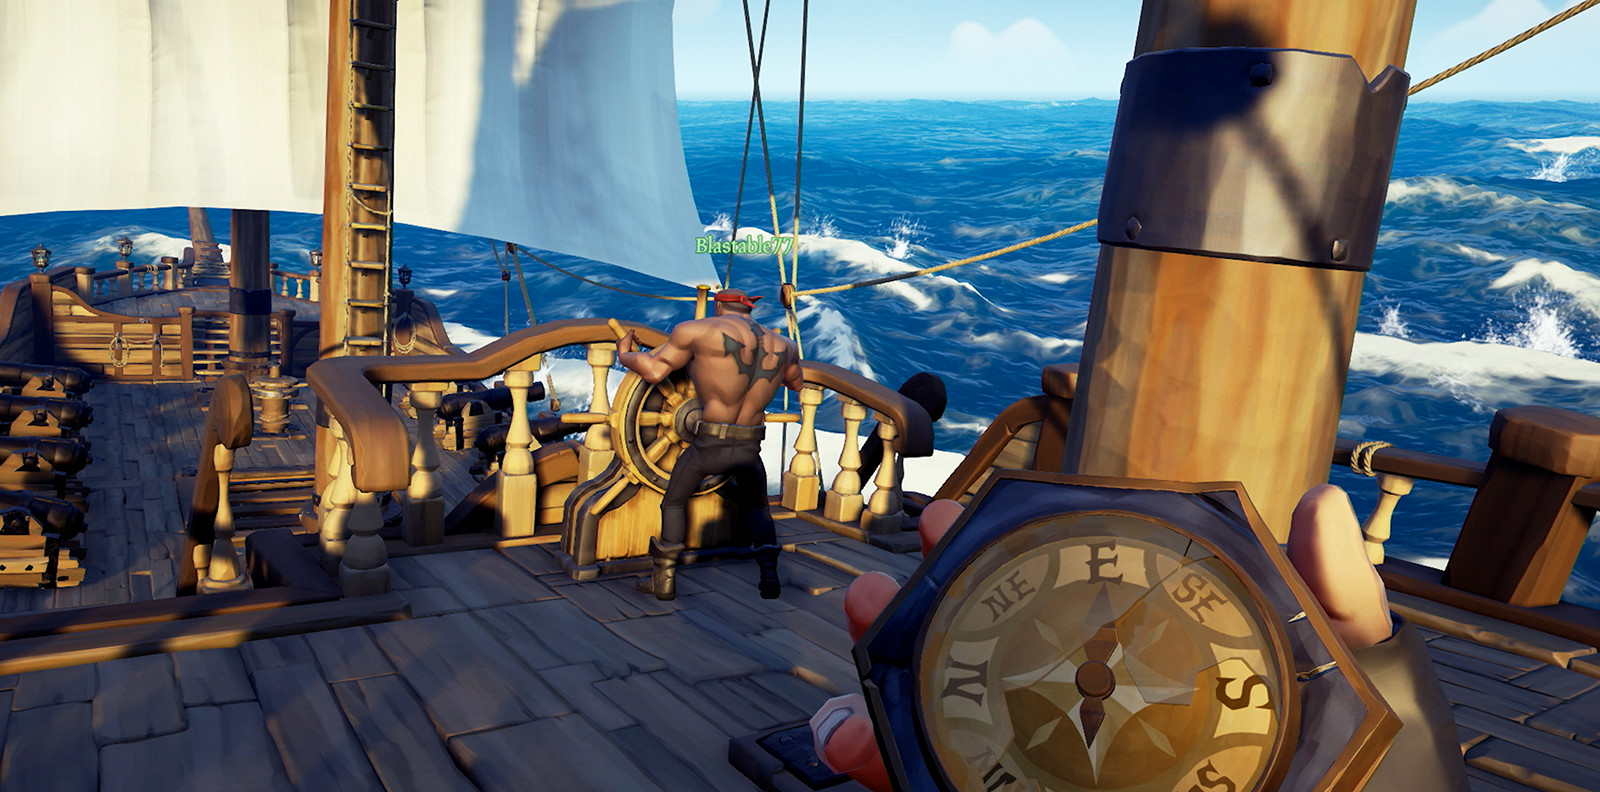 Invite friends to play Sea of Thieves for free | Windows ...